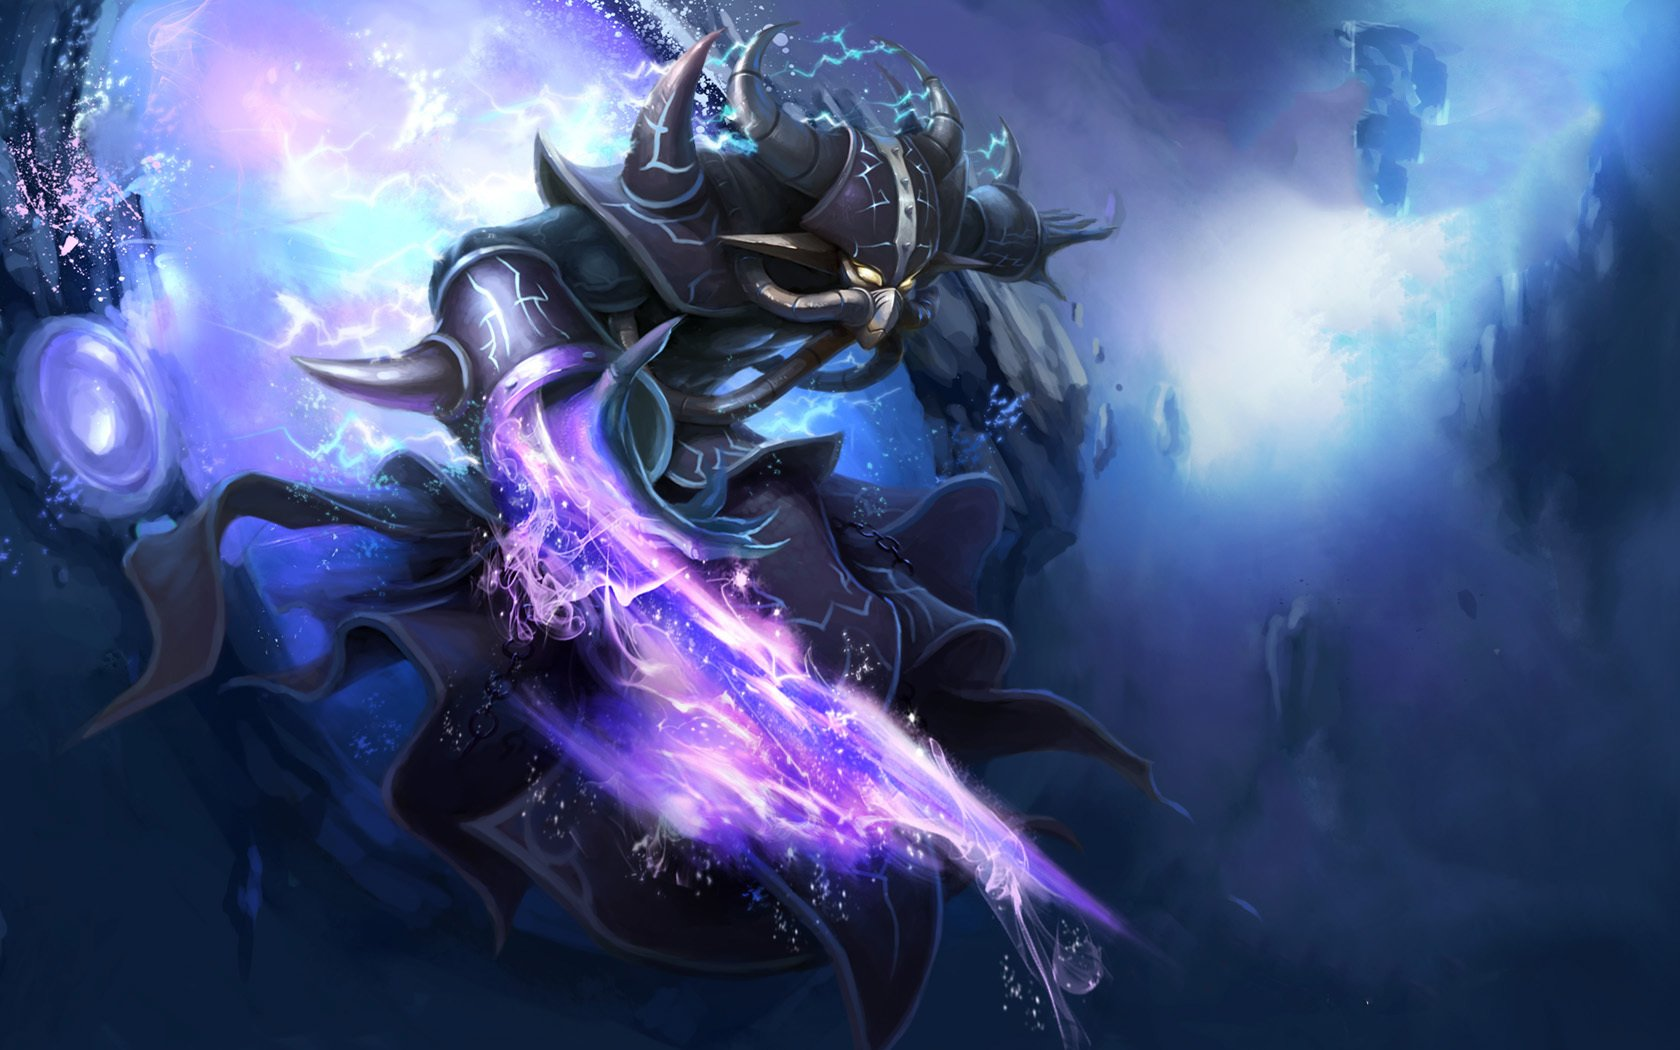 Wallpapers League of Legends Anime Fondos Wallpapers 1680x1050